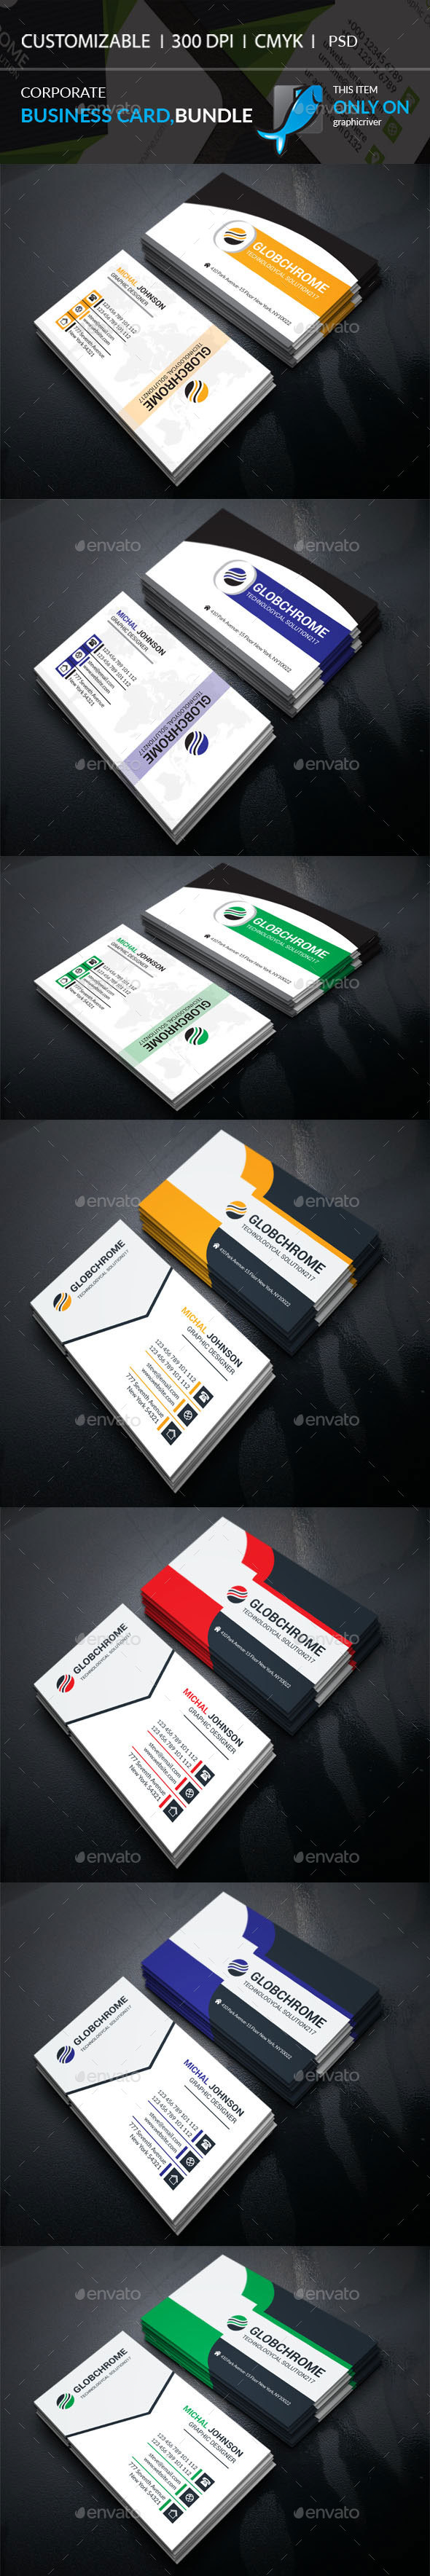 Corporate Business Card Bundle - Corporate Business Cards